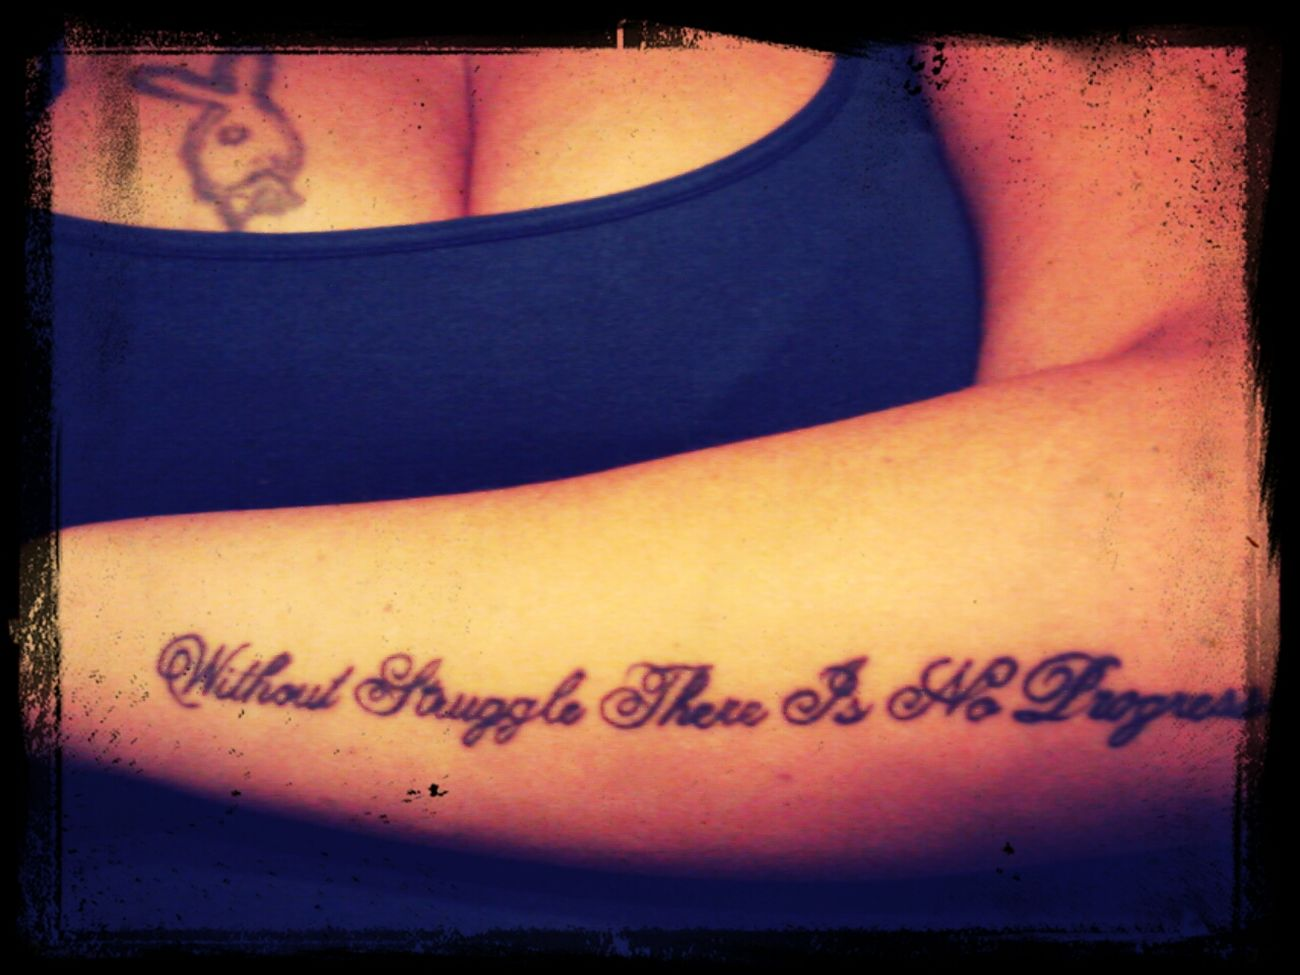 without struggle there is no progress... Tattoo